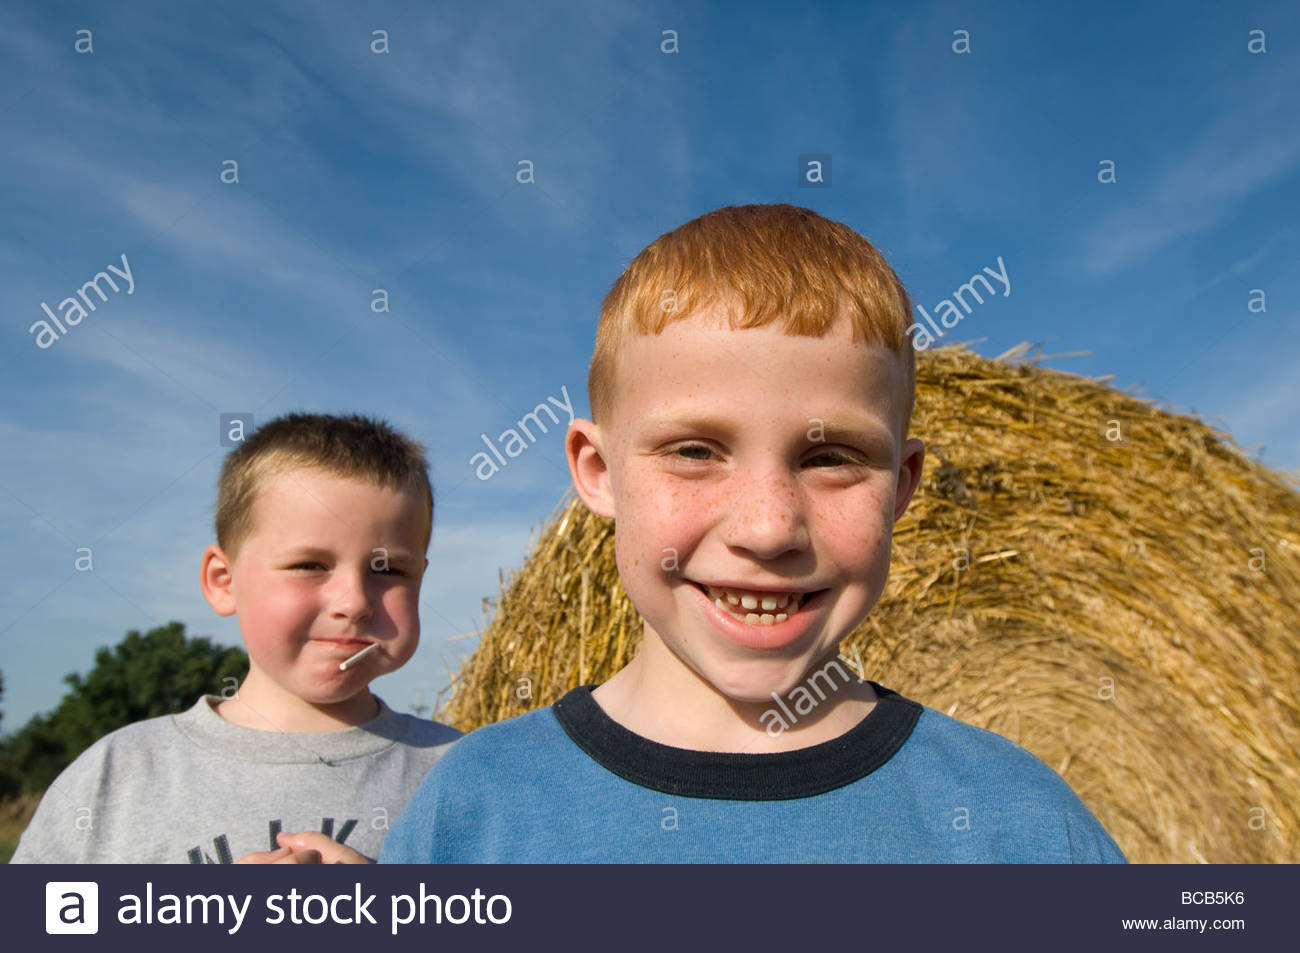 Two young kids by a haybale in Greenleaf, Kansas. - Stock Image